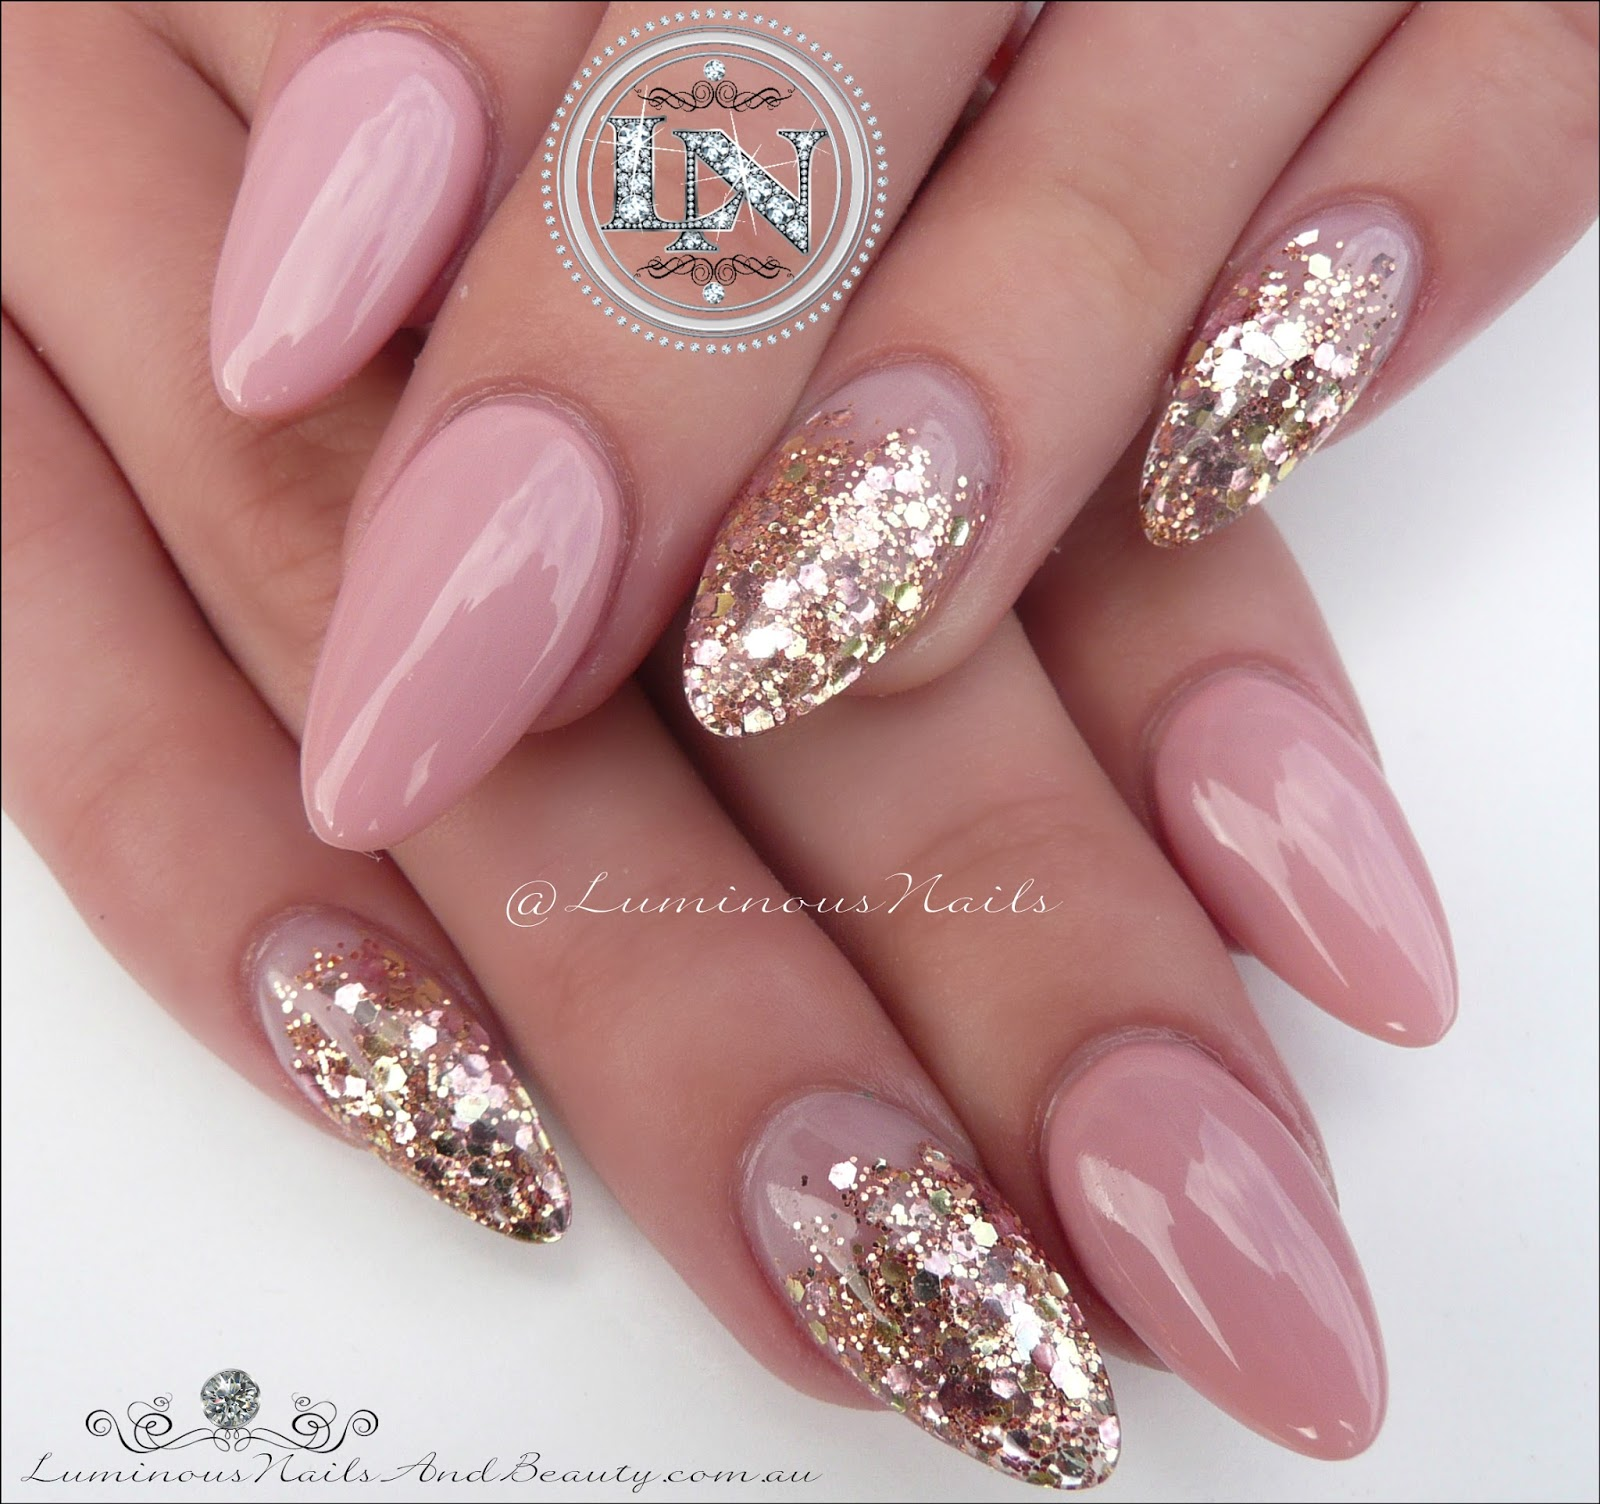 luminous nails: stunning nude nails with antique gold glitter